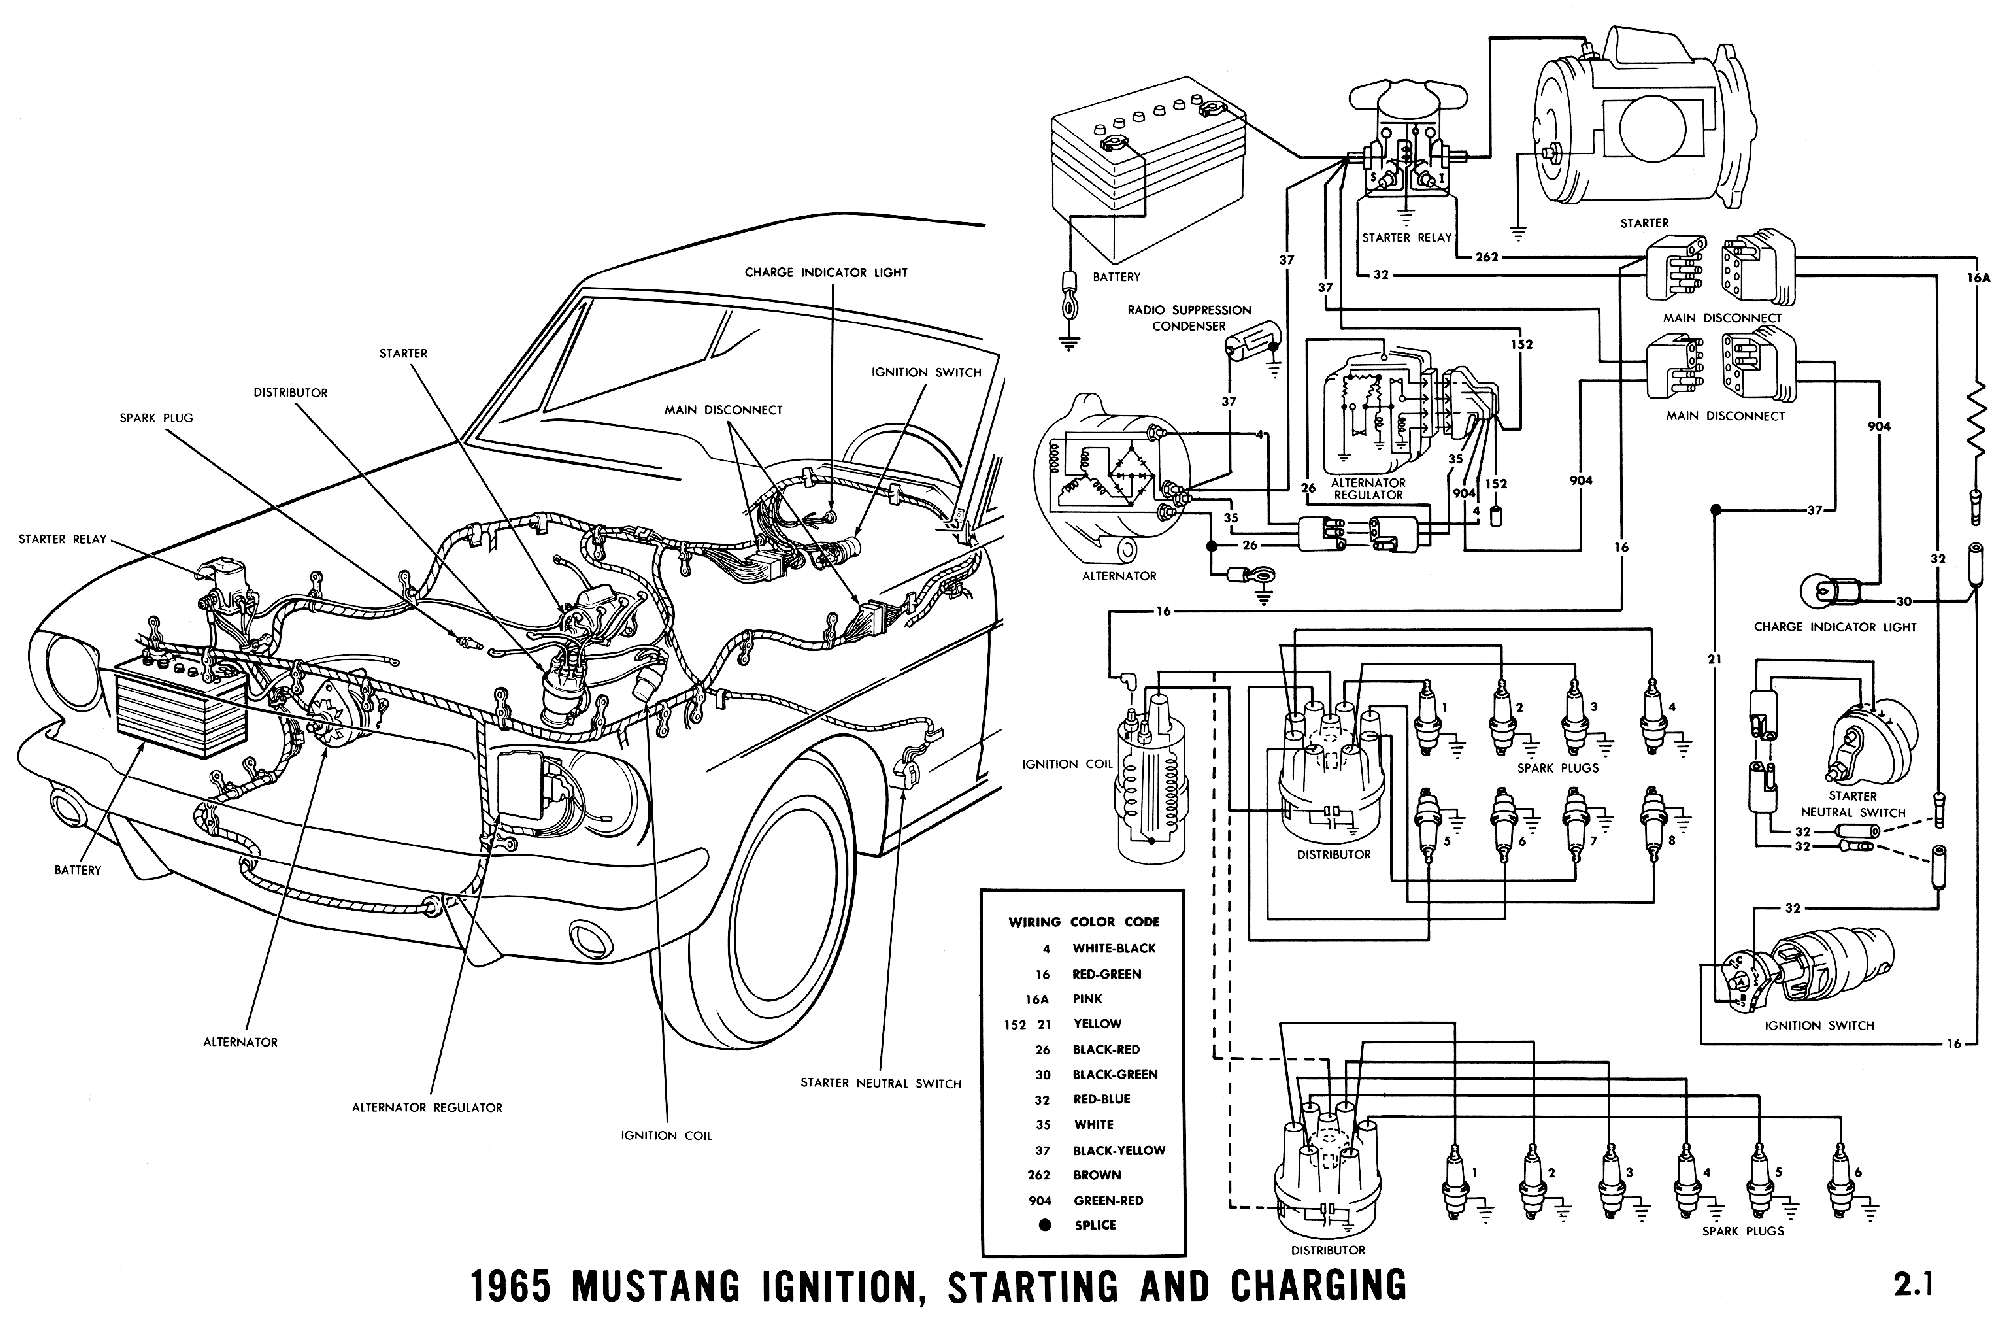 1966 Ford Mustang Wiring Another Blog About Diagram 1999 Jetta Charging System 1965 Diagrams Average Joe Restoration Rh Averagejoerestoration Com Turn Signal